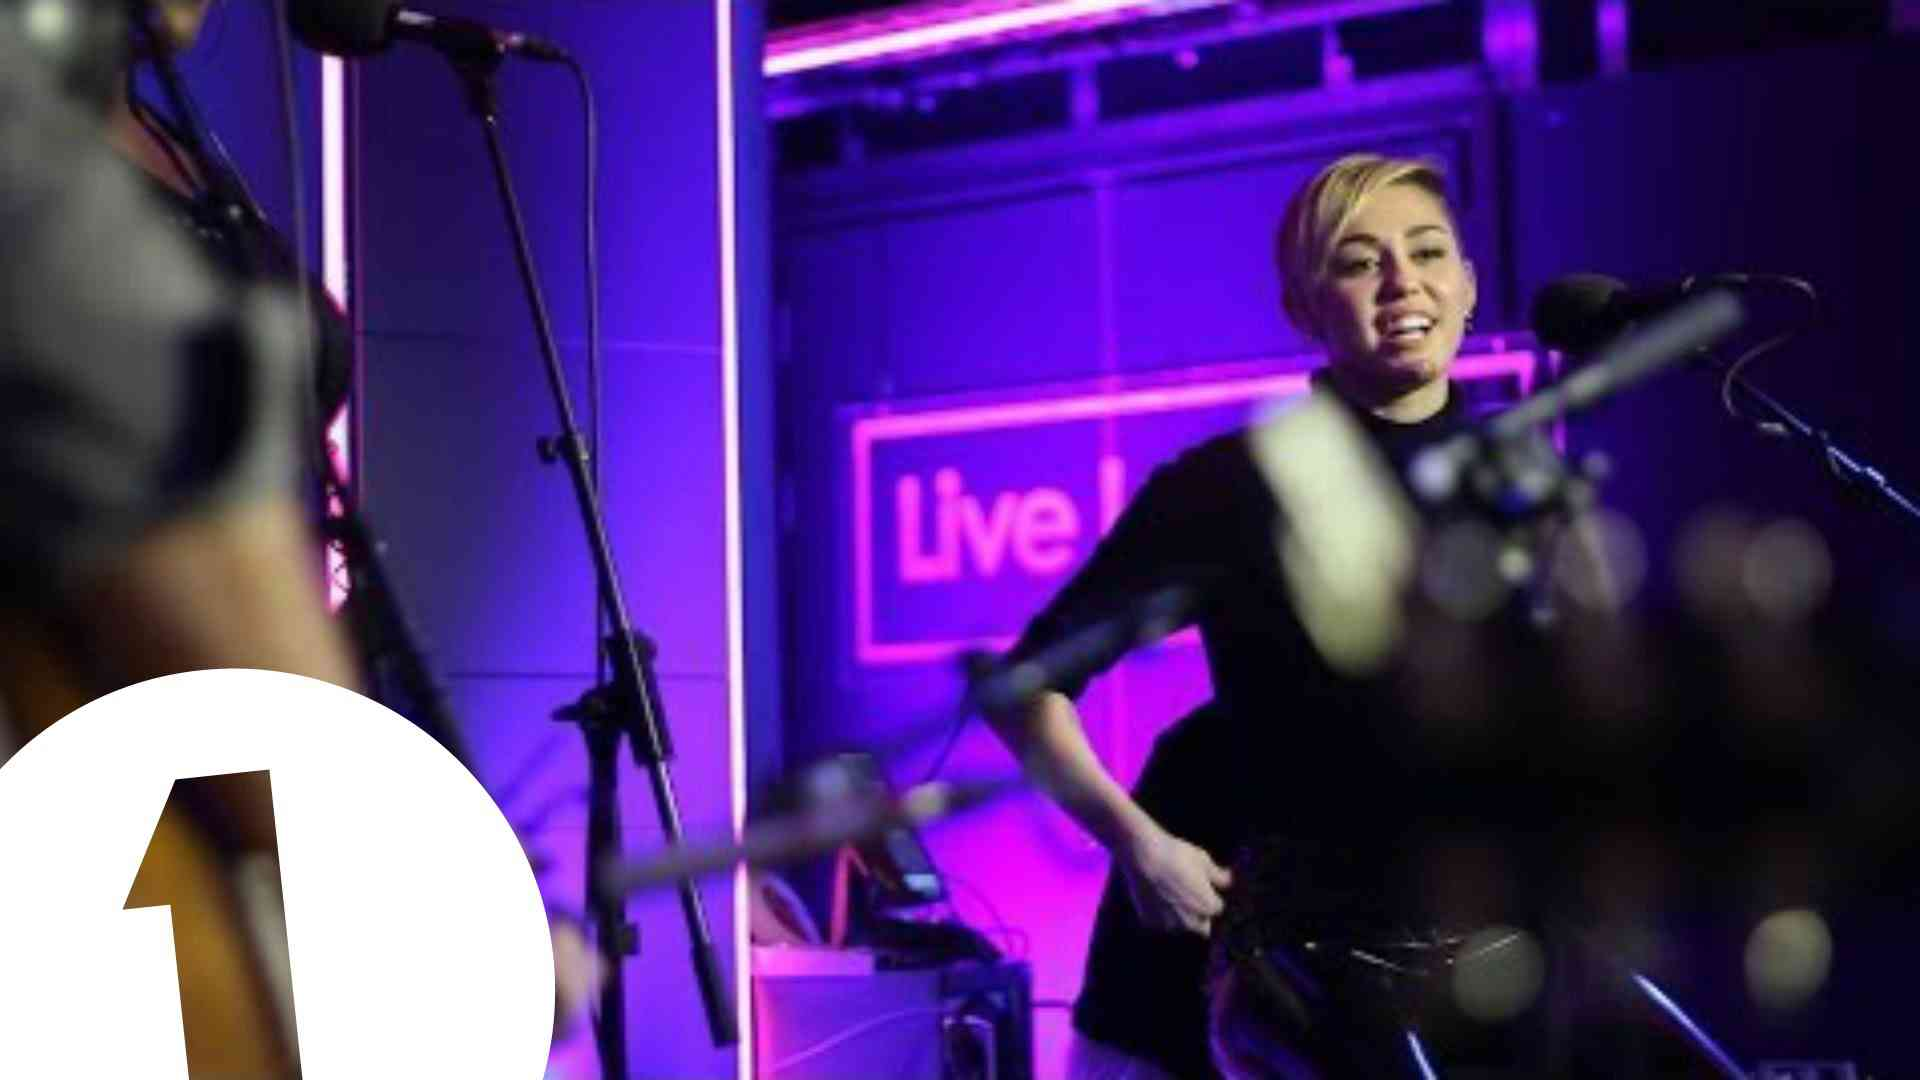 Miley Cyrus covers Summertime Sadness in the Live Lounge - YouTube